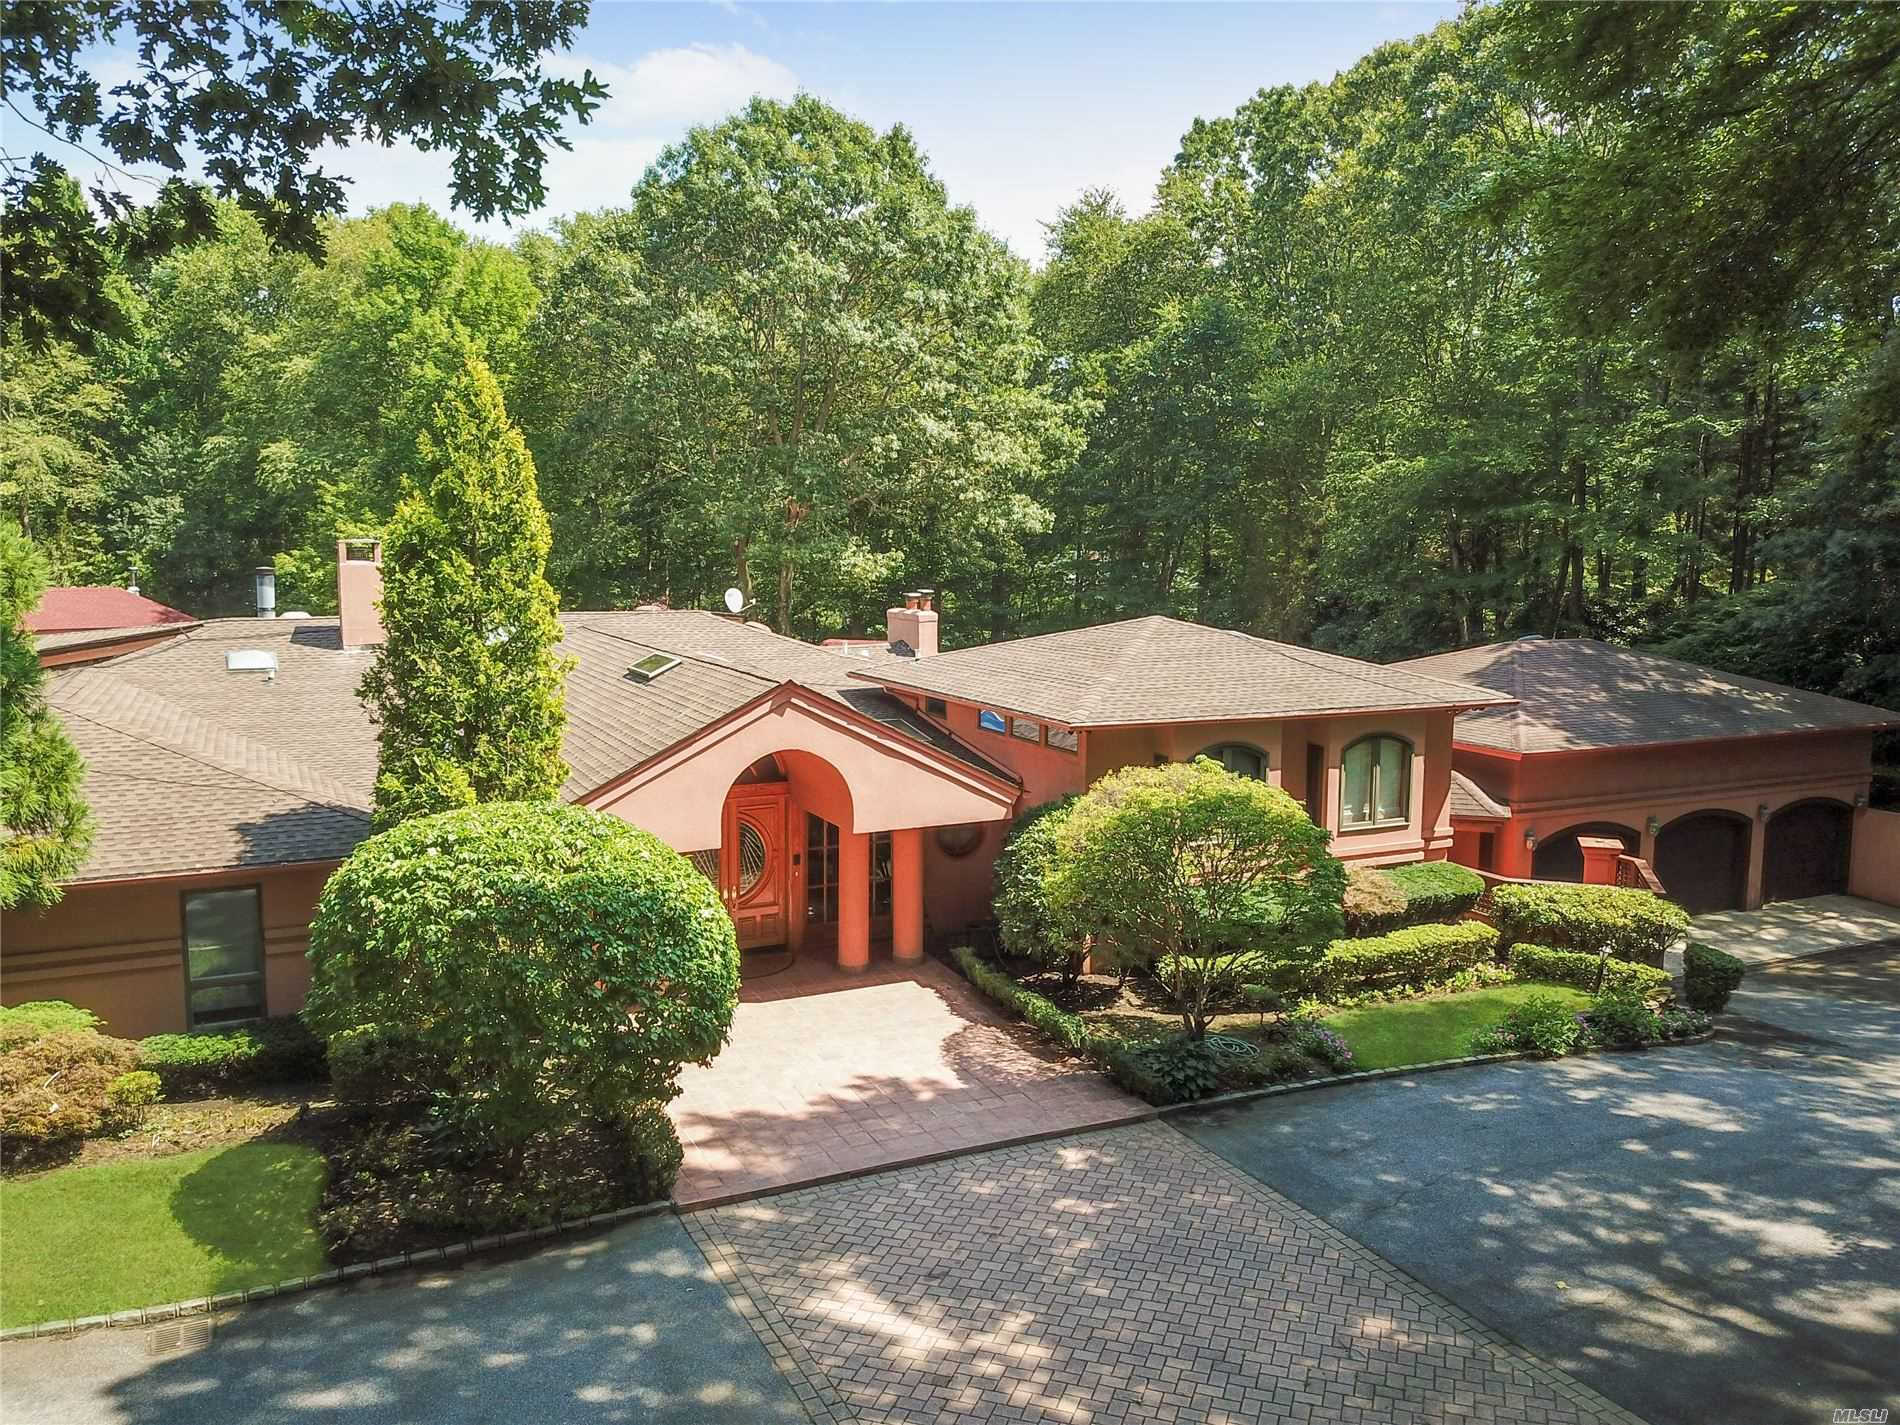 12 Timber Ridge Dr, Laurel Hollow, NY 11771 now has a new price of $2,300,000!